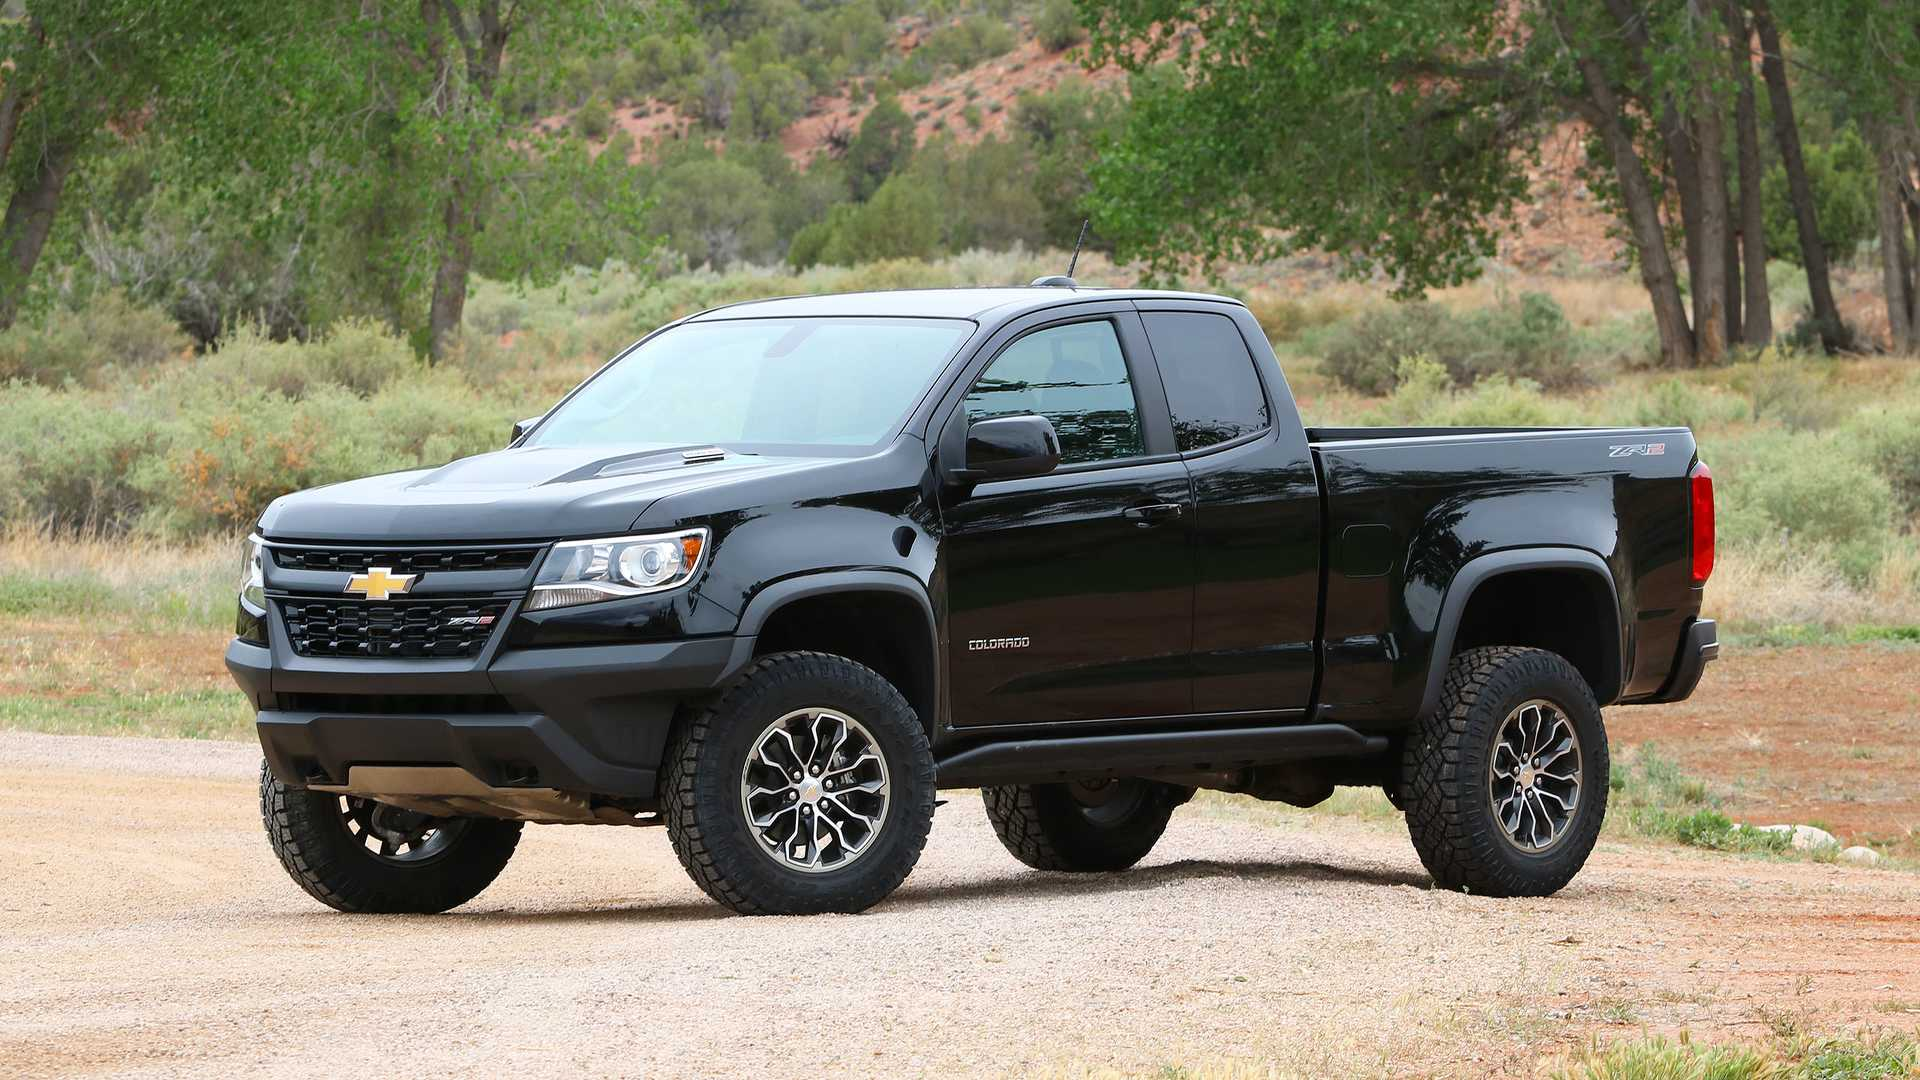 2017 Chevy Colorado Zr2 >> 2017 Chevy Colorado ZR2 First Drive: Mud And Dirt Made Easy